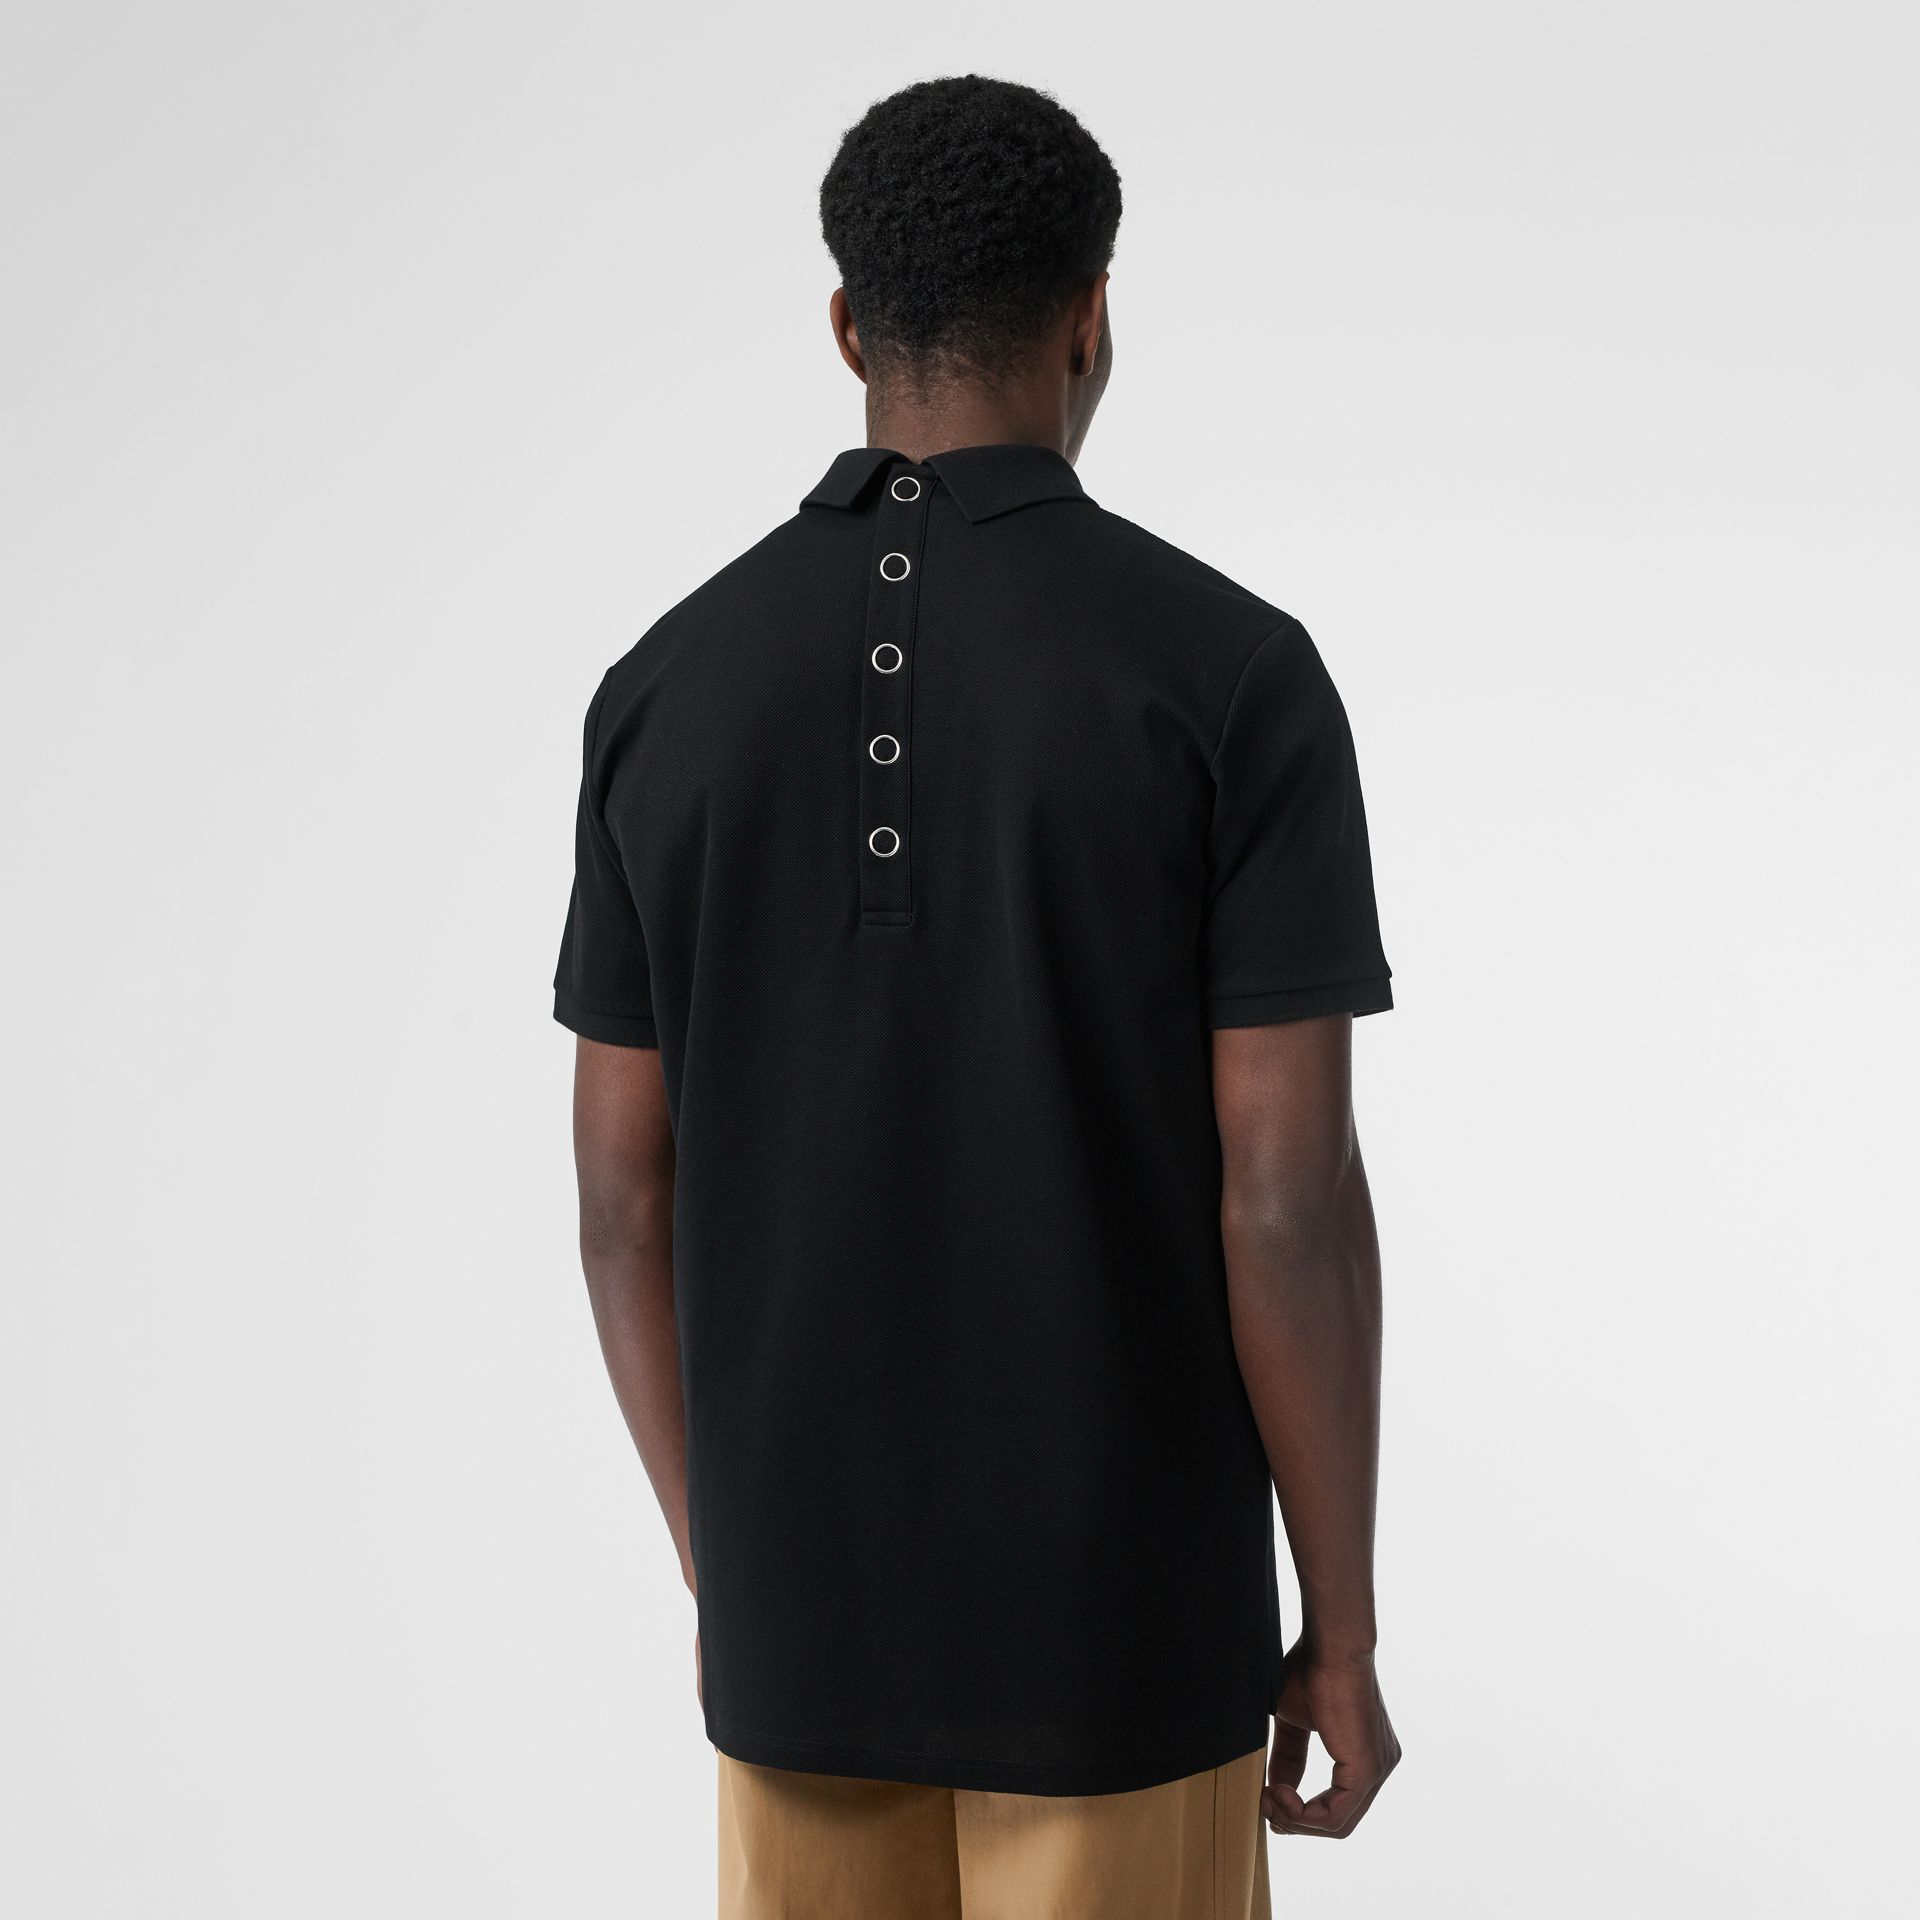 Monogram Motif Cotton Piqué Polo Shirt in Black | Burberry United States - gallery image 2